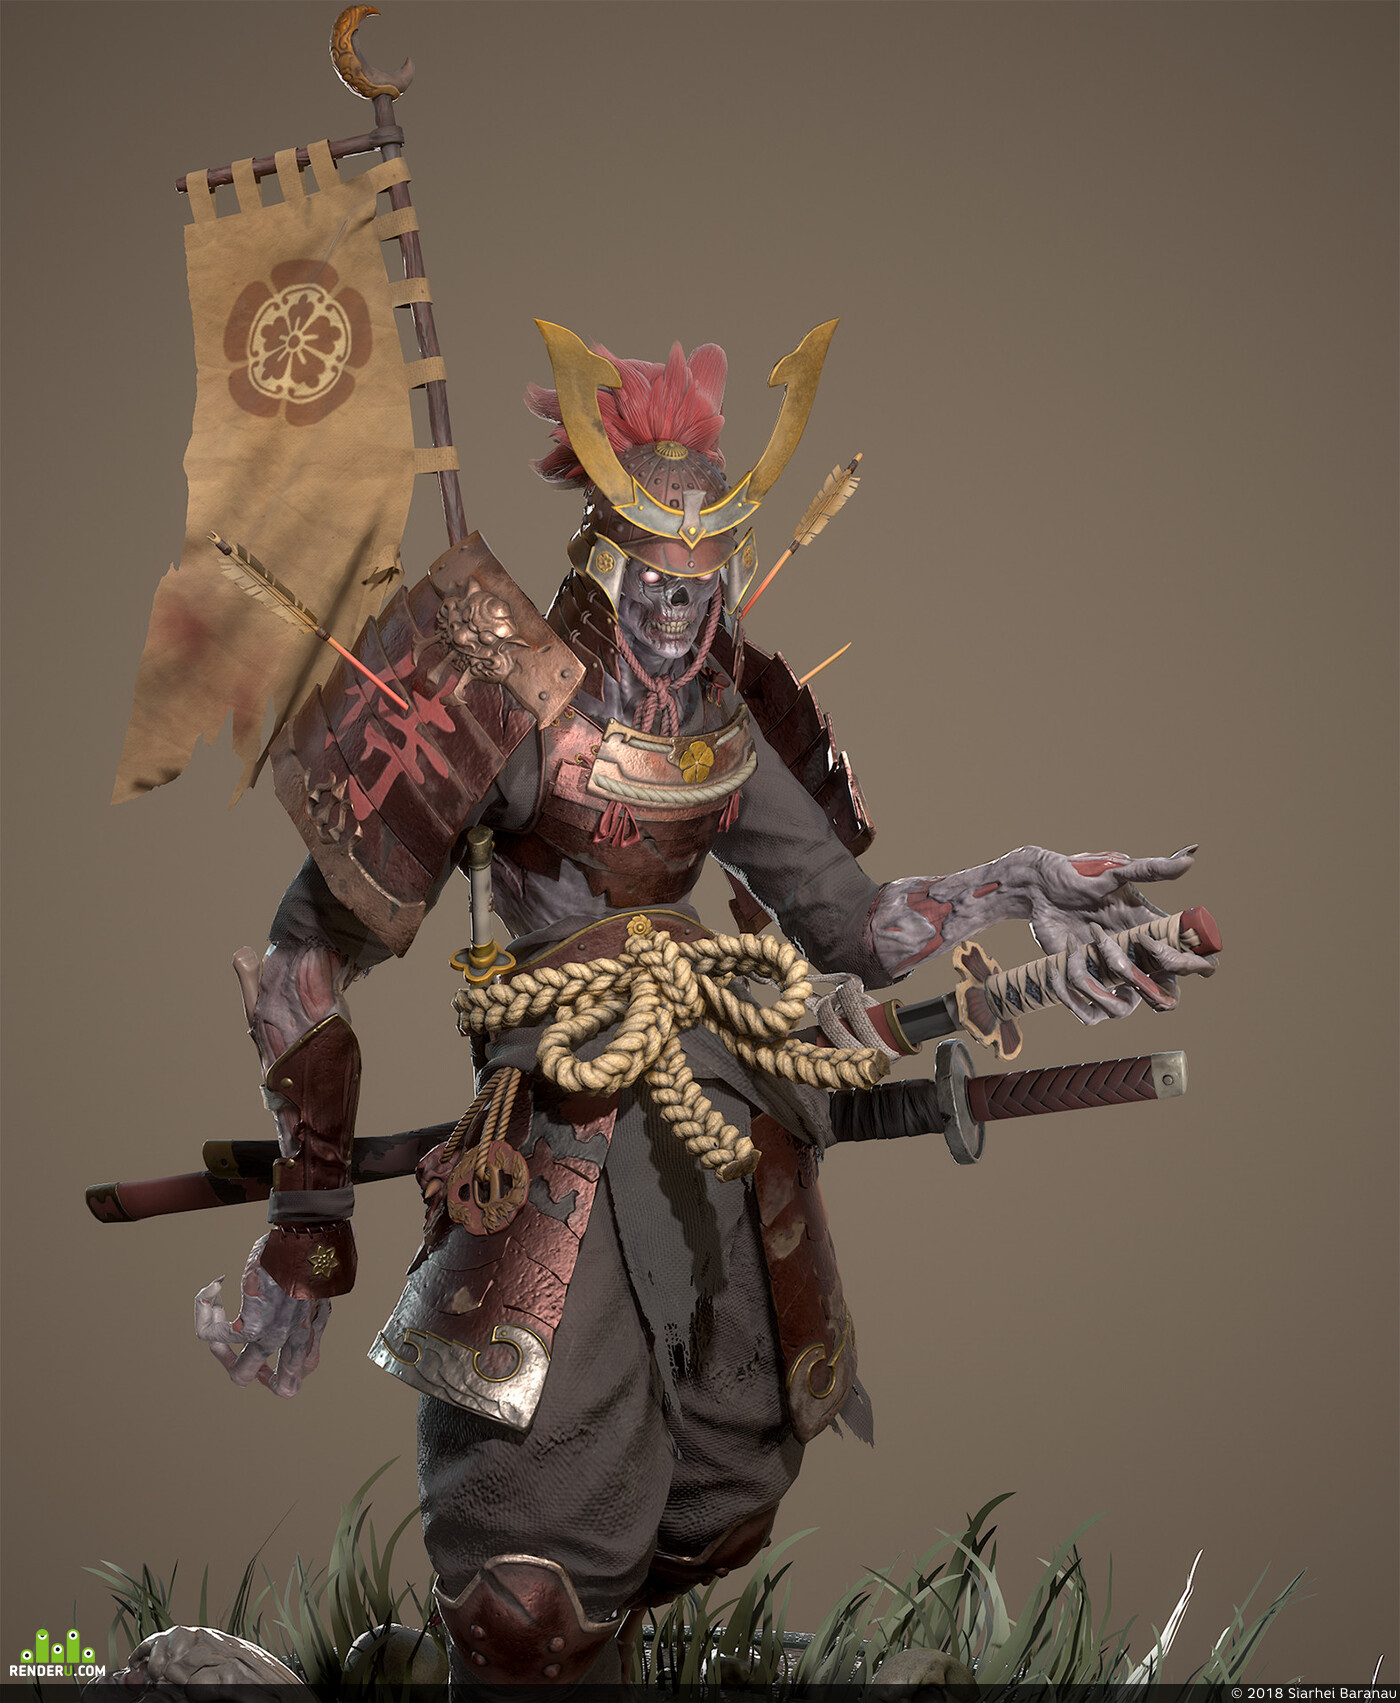 game art, gameart, game character, gamedev, samurai, zombie, Game Low-poly